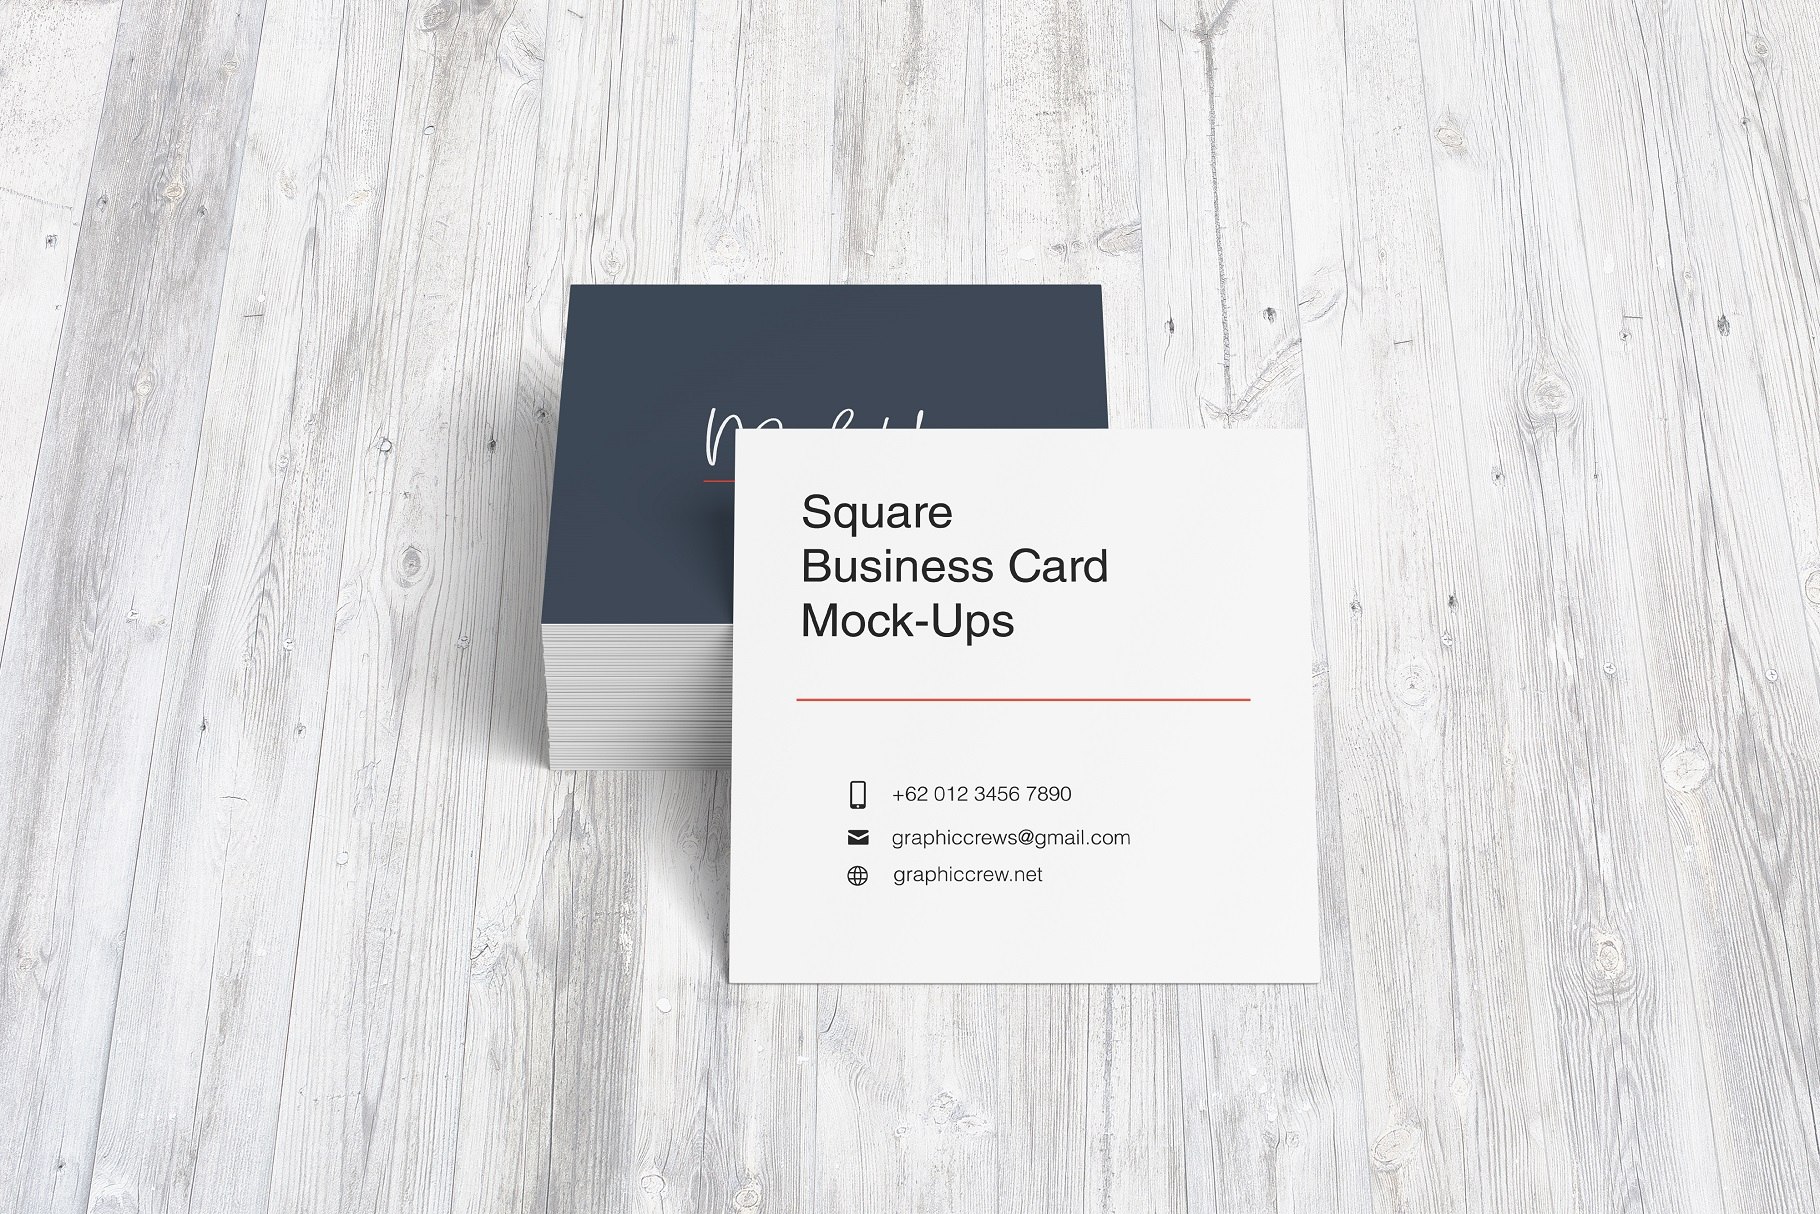 Square Business Card Mockup example image 6